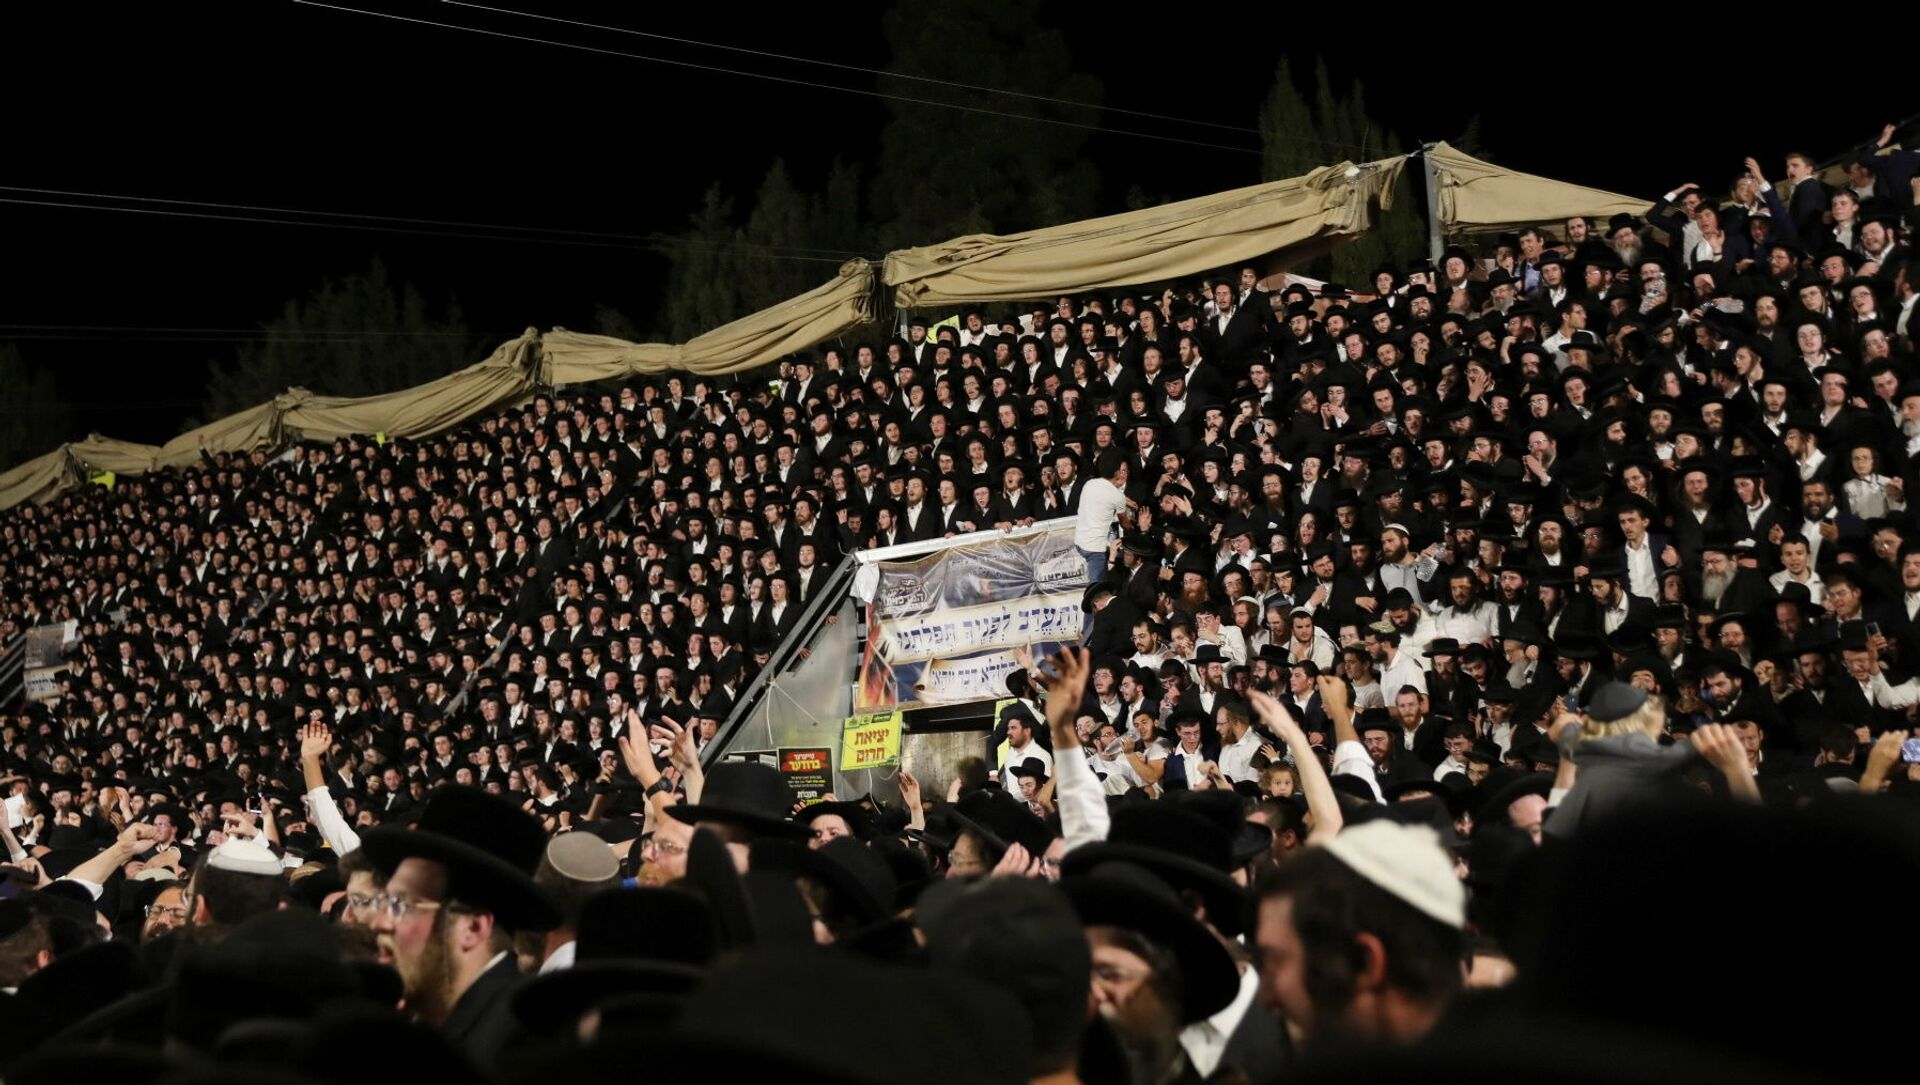 Jewish worshippers sing and dance as they stand on tribunes at the Lag B'Omer event in Mount Meron, northern Israel, April 29, 2021. - Sputnik International, 1920, 29.04.2021